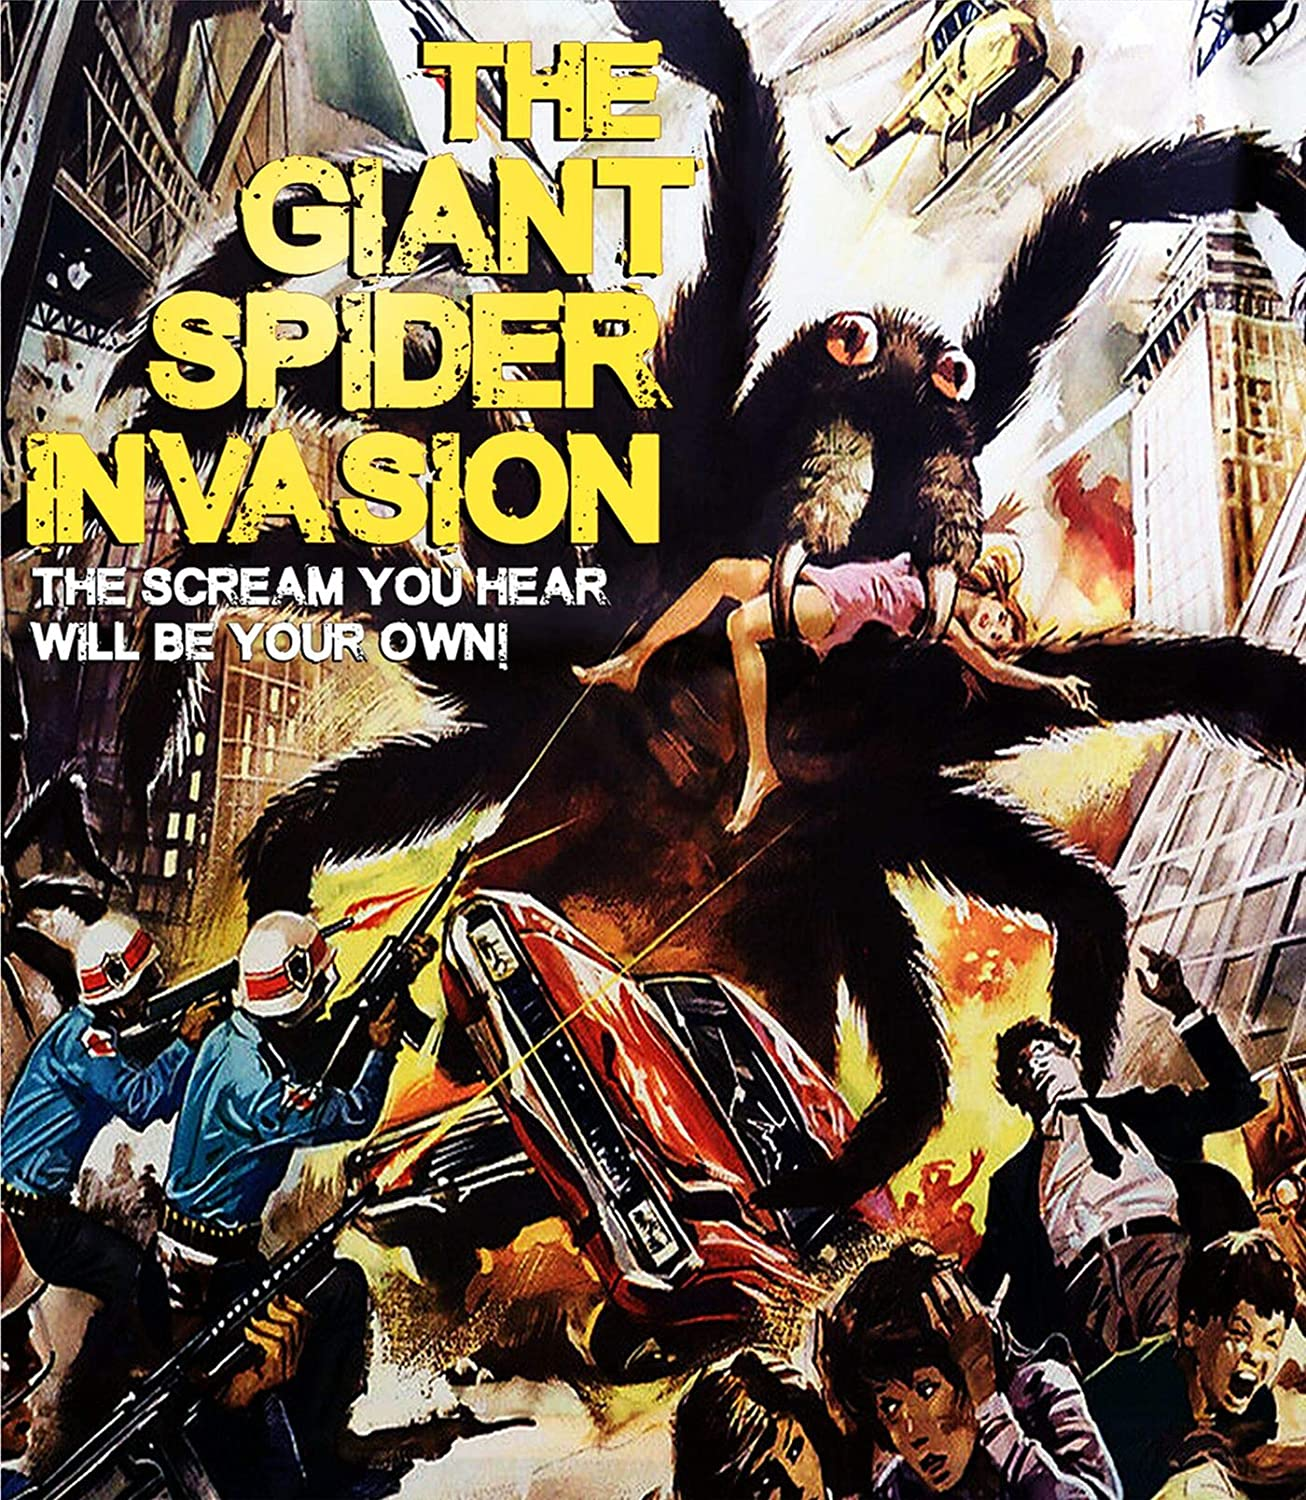 The Giant Spider Invasion (1975) starring Steve Brodie, Barbara Hale, Alan Hale Jr.